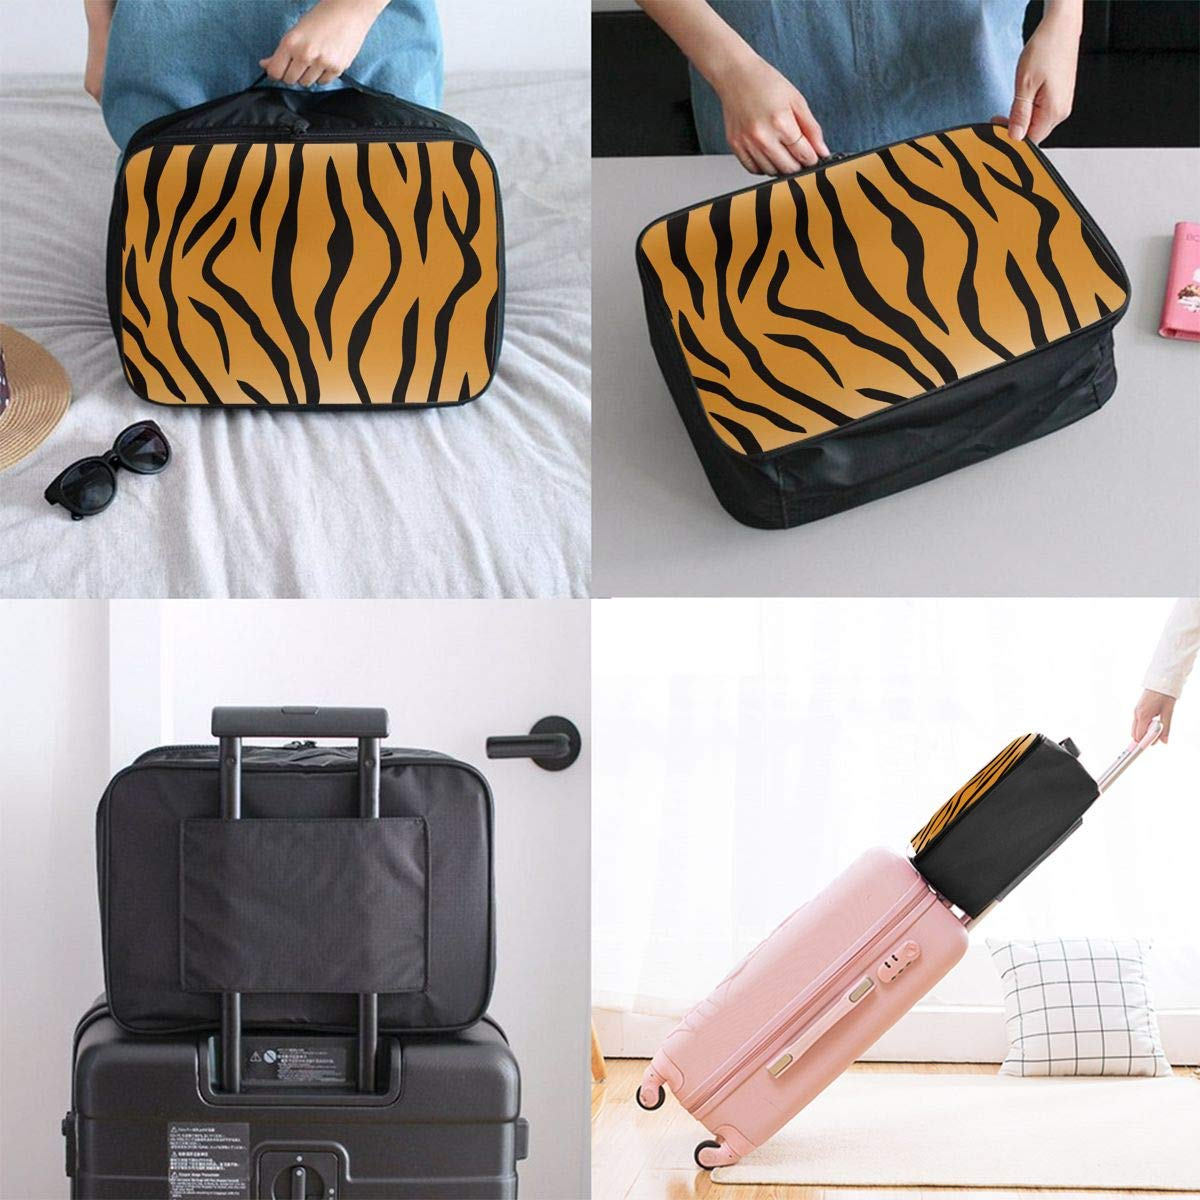 YueLJB Tiger Stripes Lightweight Large Capacity Portable Luggage Bag Travel Duffel Bag Storage Carry Luggage Duffle Tote Bag